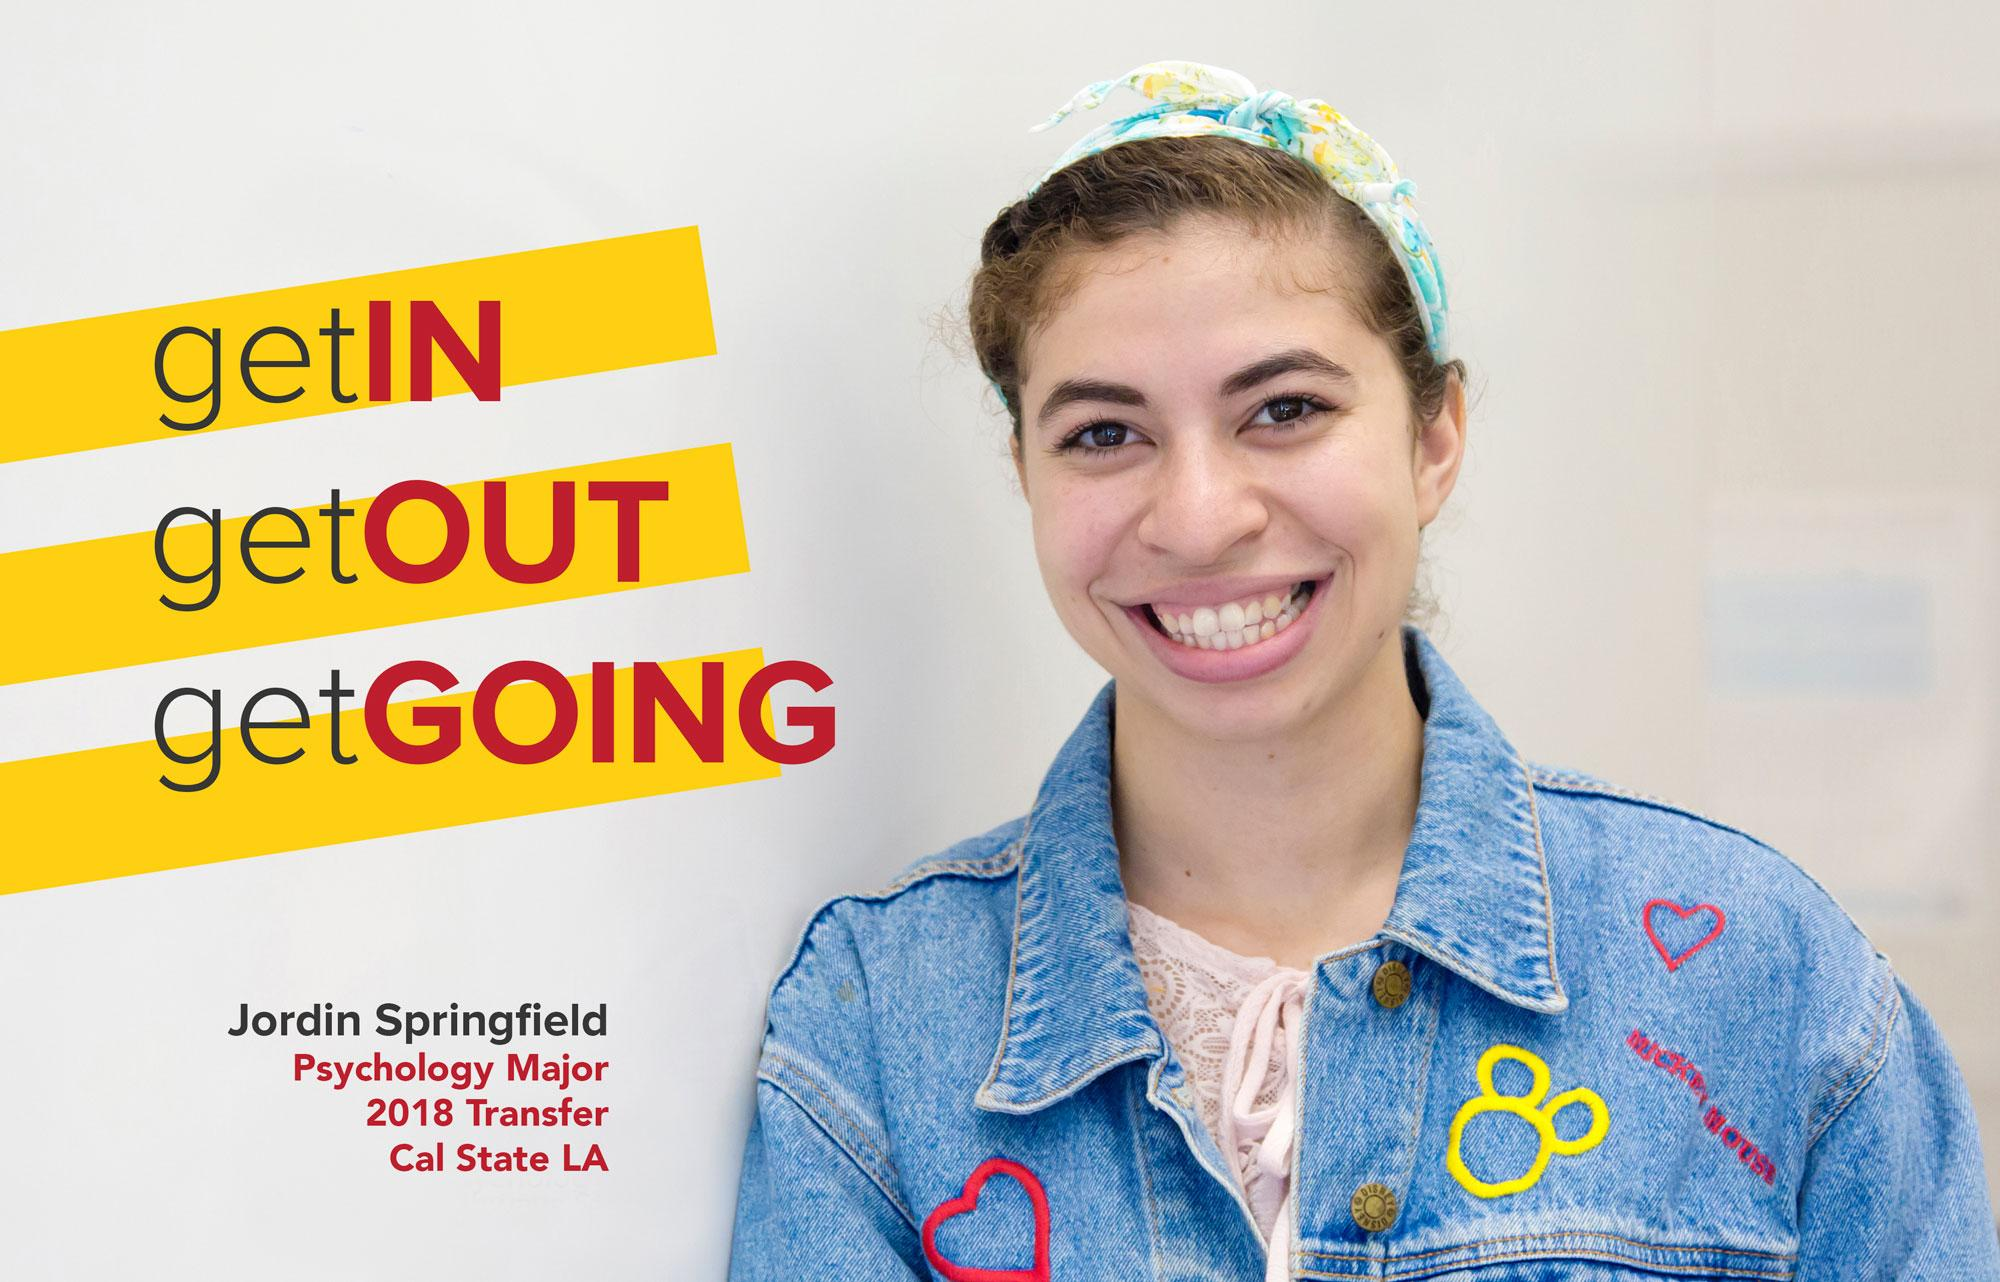 Jordin Springfield is a Psychology Major transferring to Cal State LA.